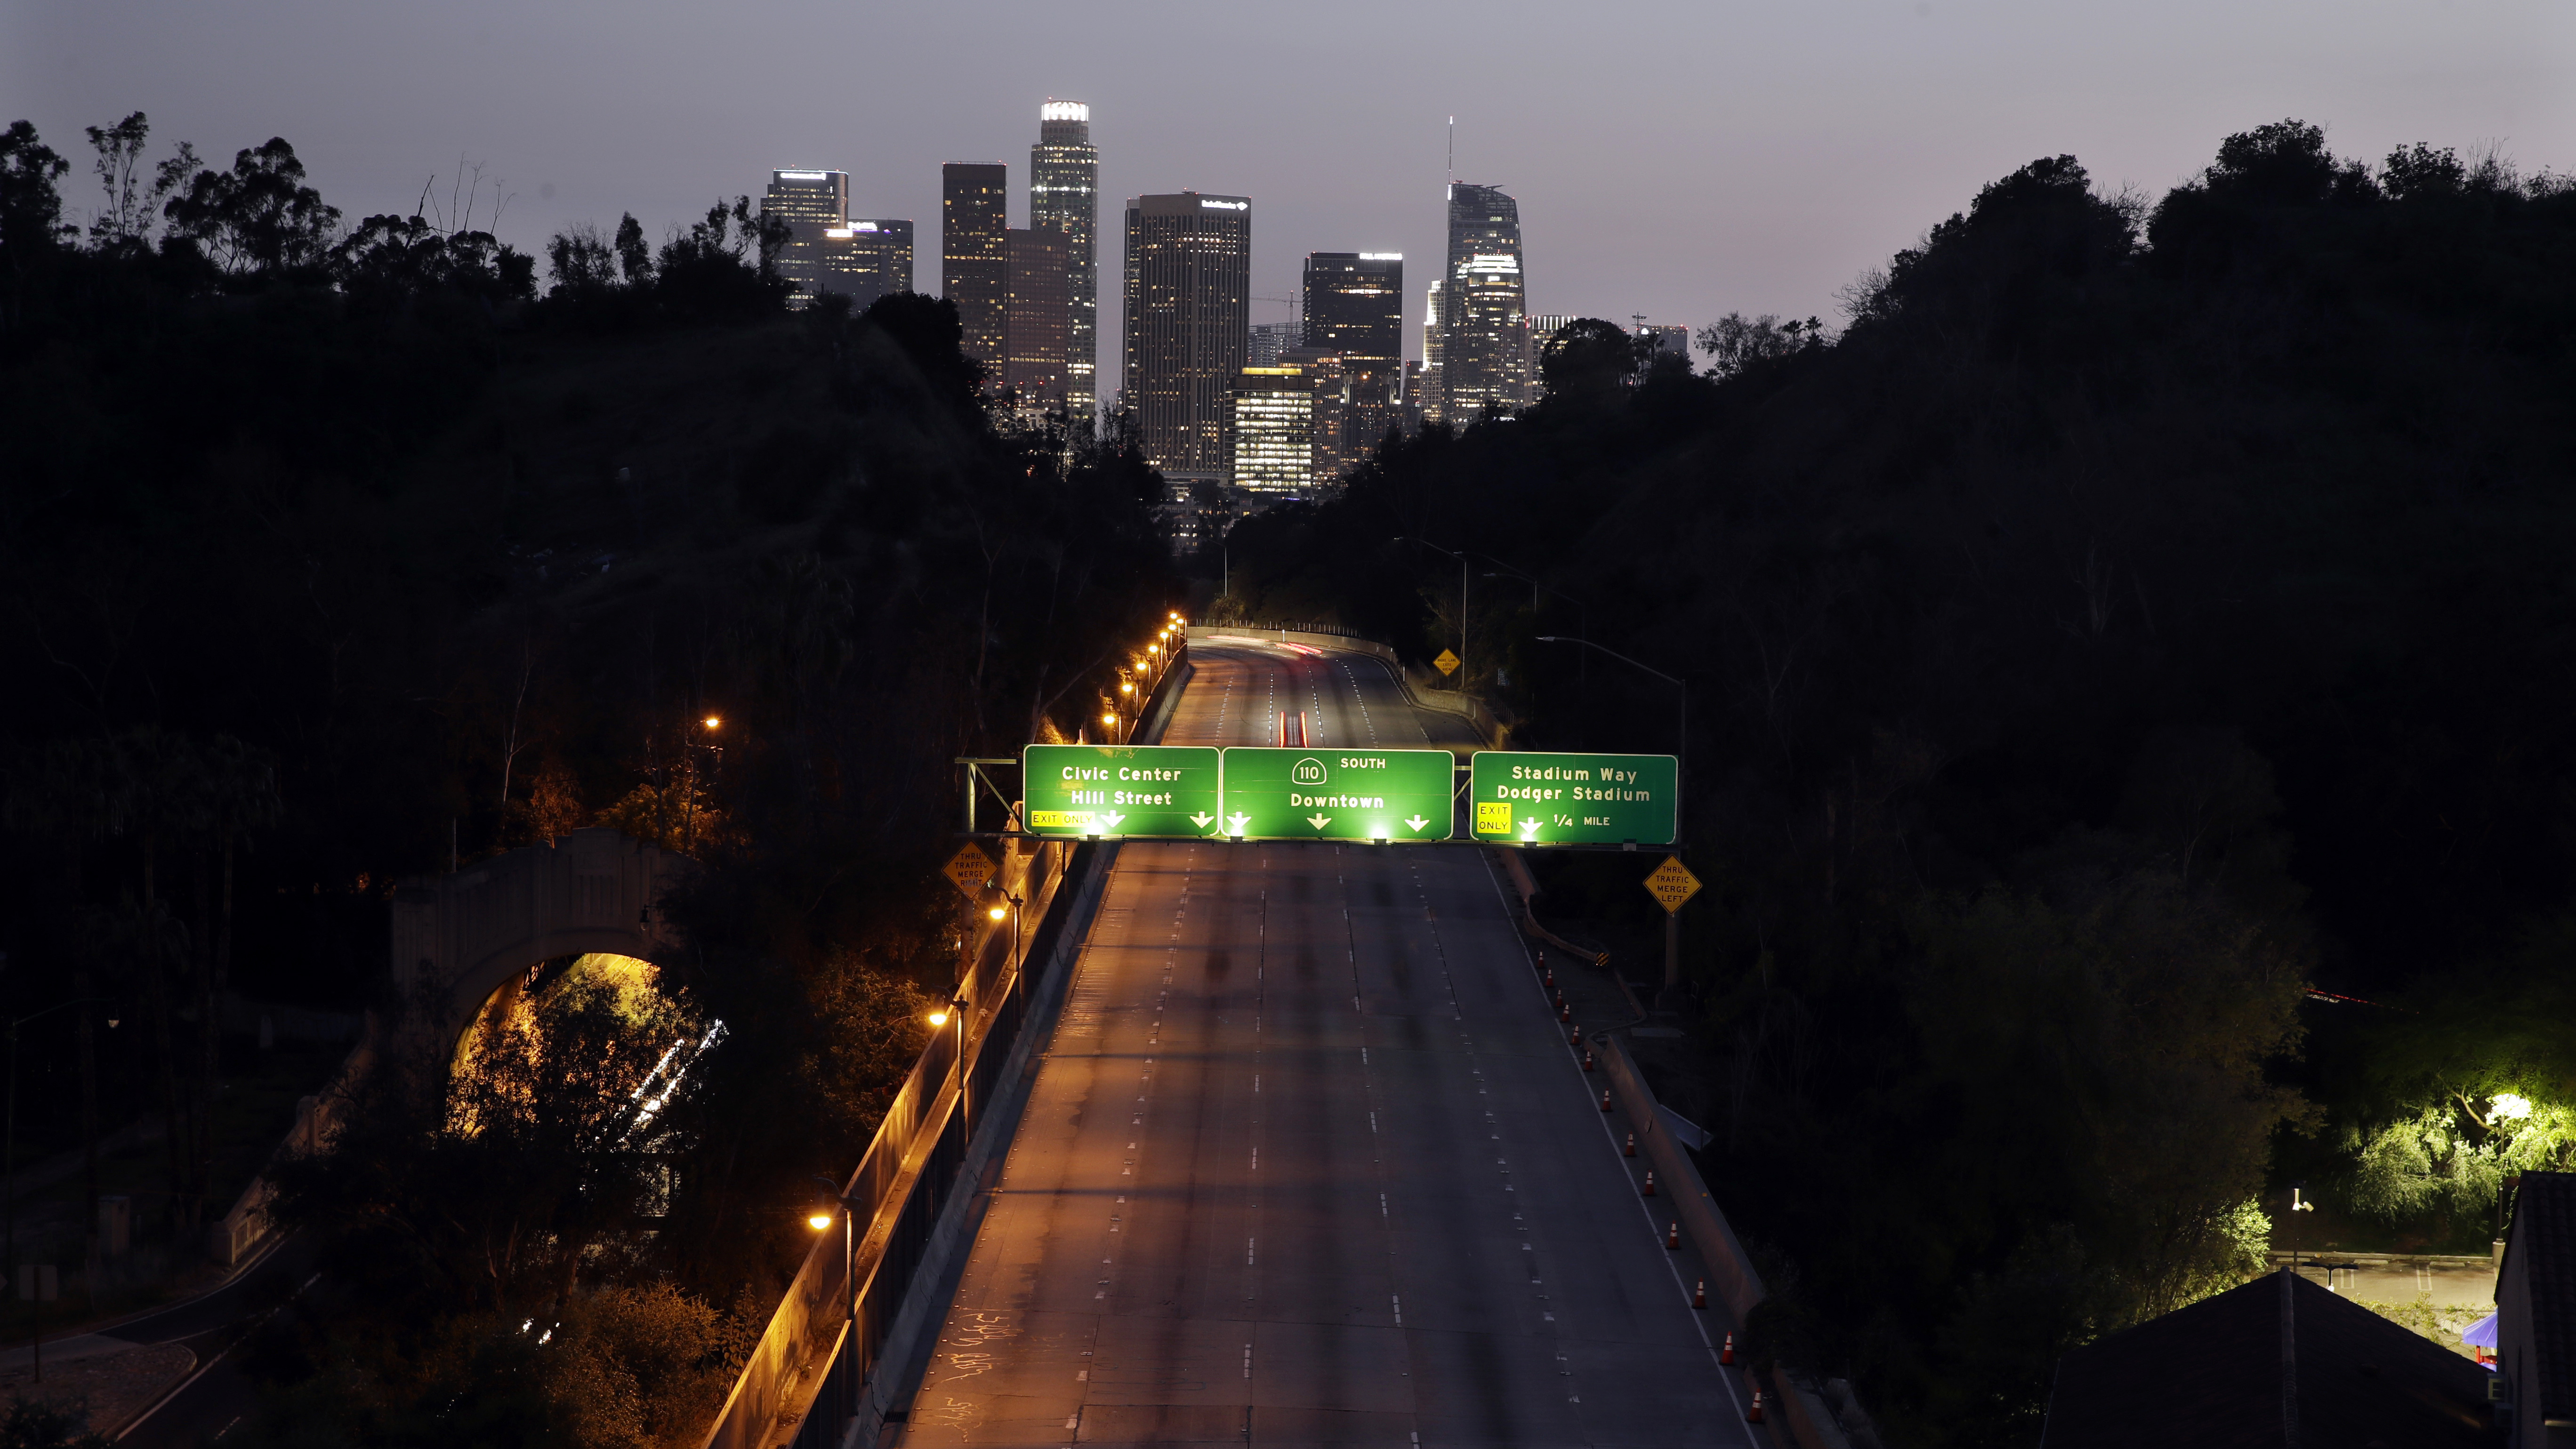 California State Route 110 seen with downtown Los Angeles in the background Thursday night. The state is in its second week of a lockdown, where schools and nonessential businesses are closed and the governor has ordered people to stay home.